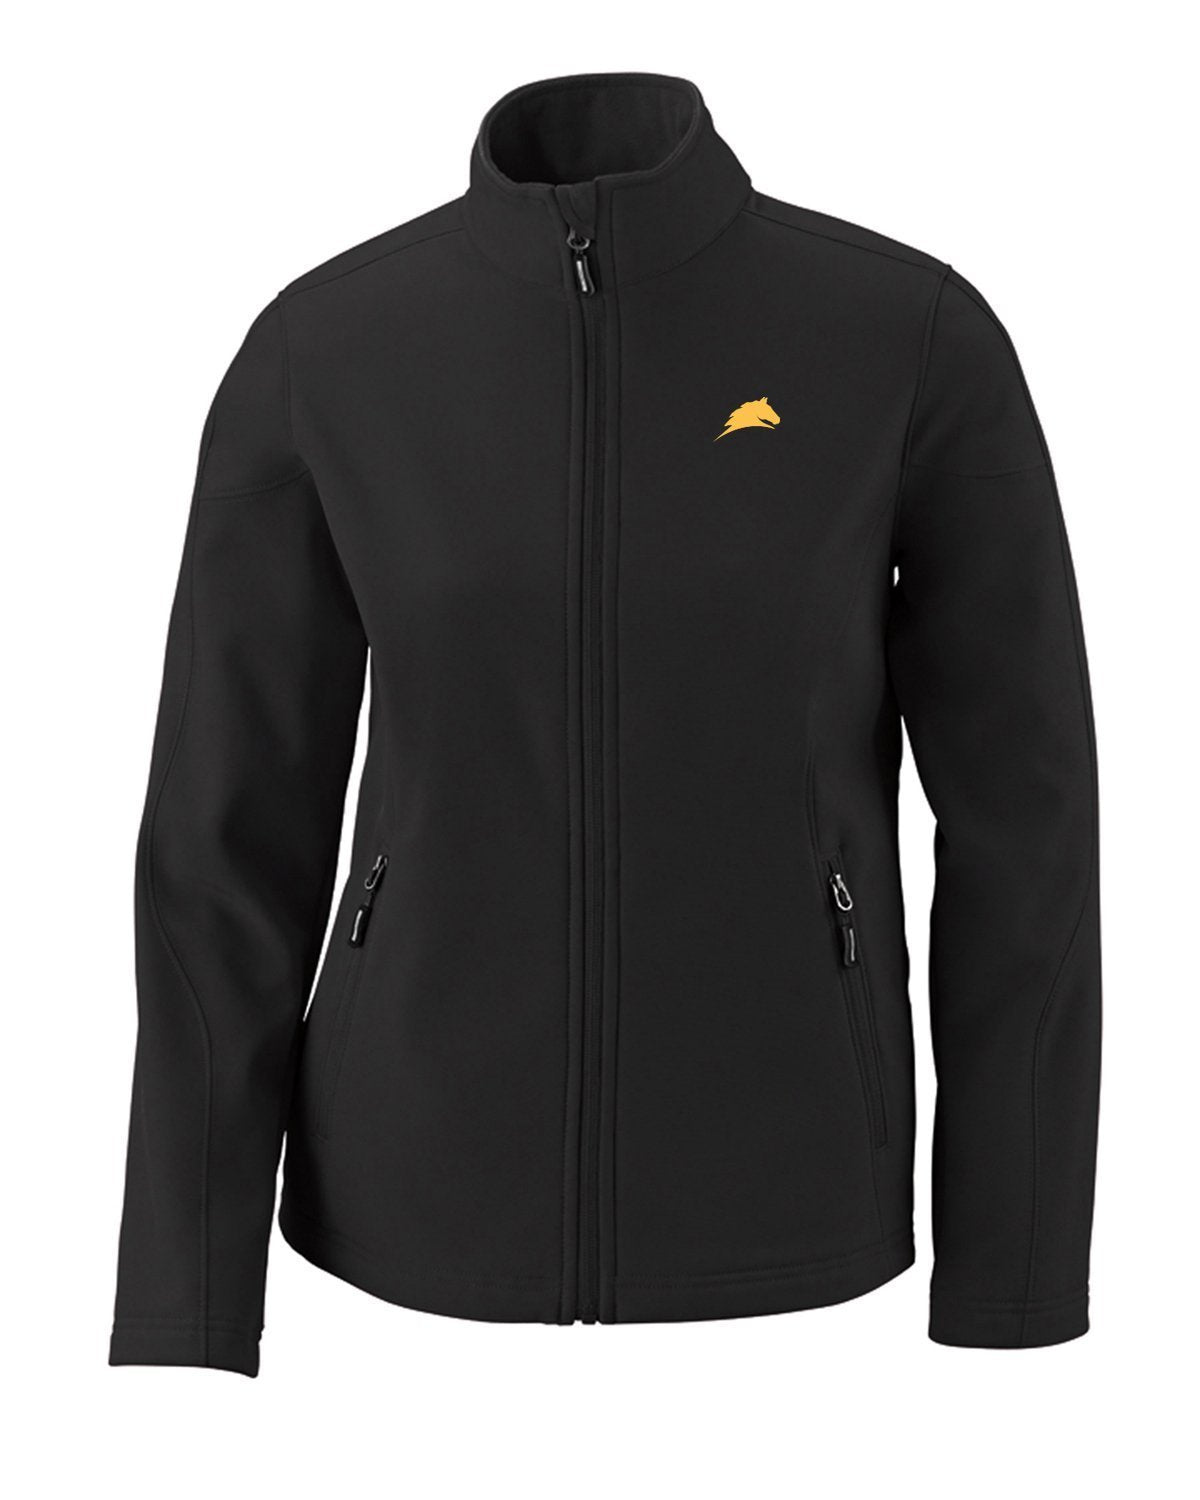 Ladies Fleece Lined Soft Shell Jacket